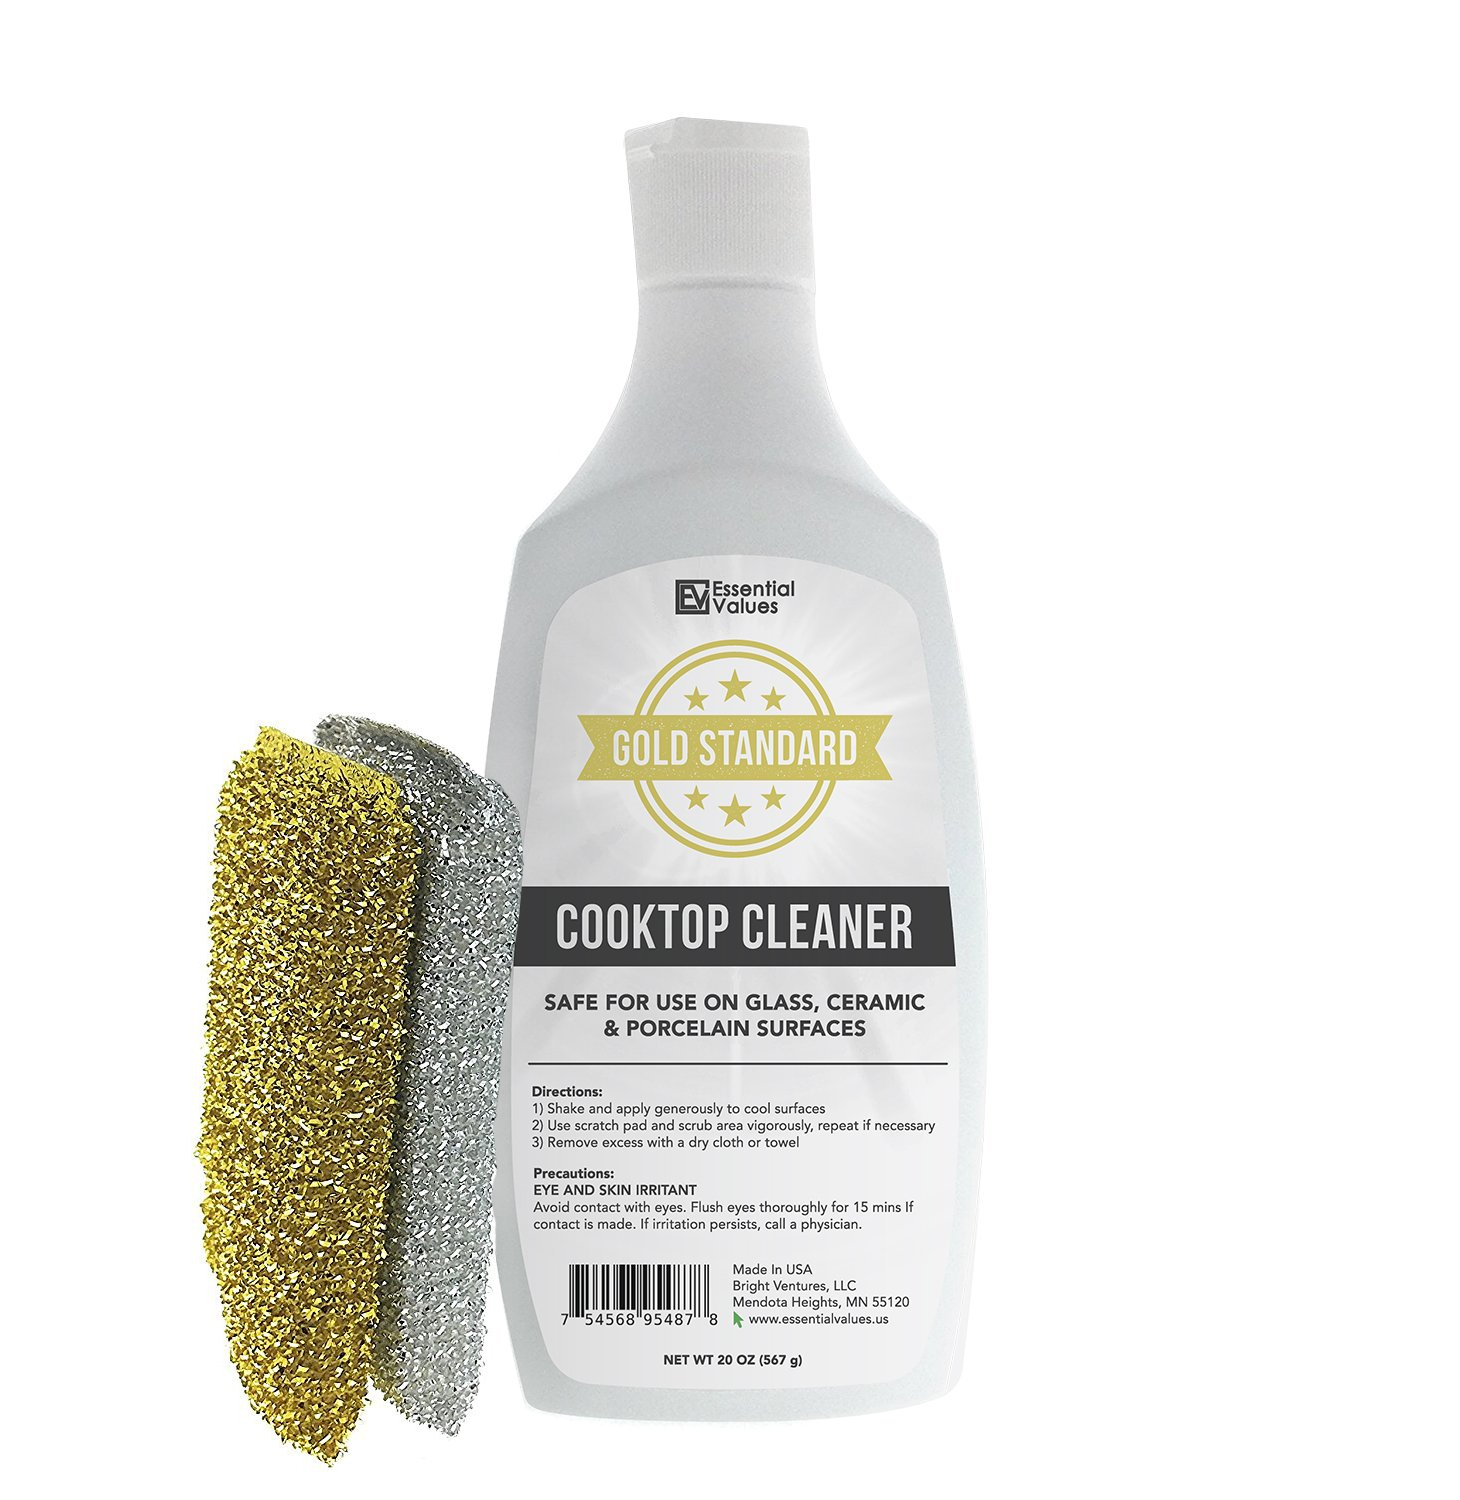 Essential Values Cooktop Cleaner Kit